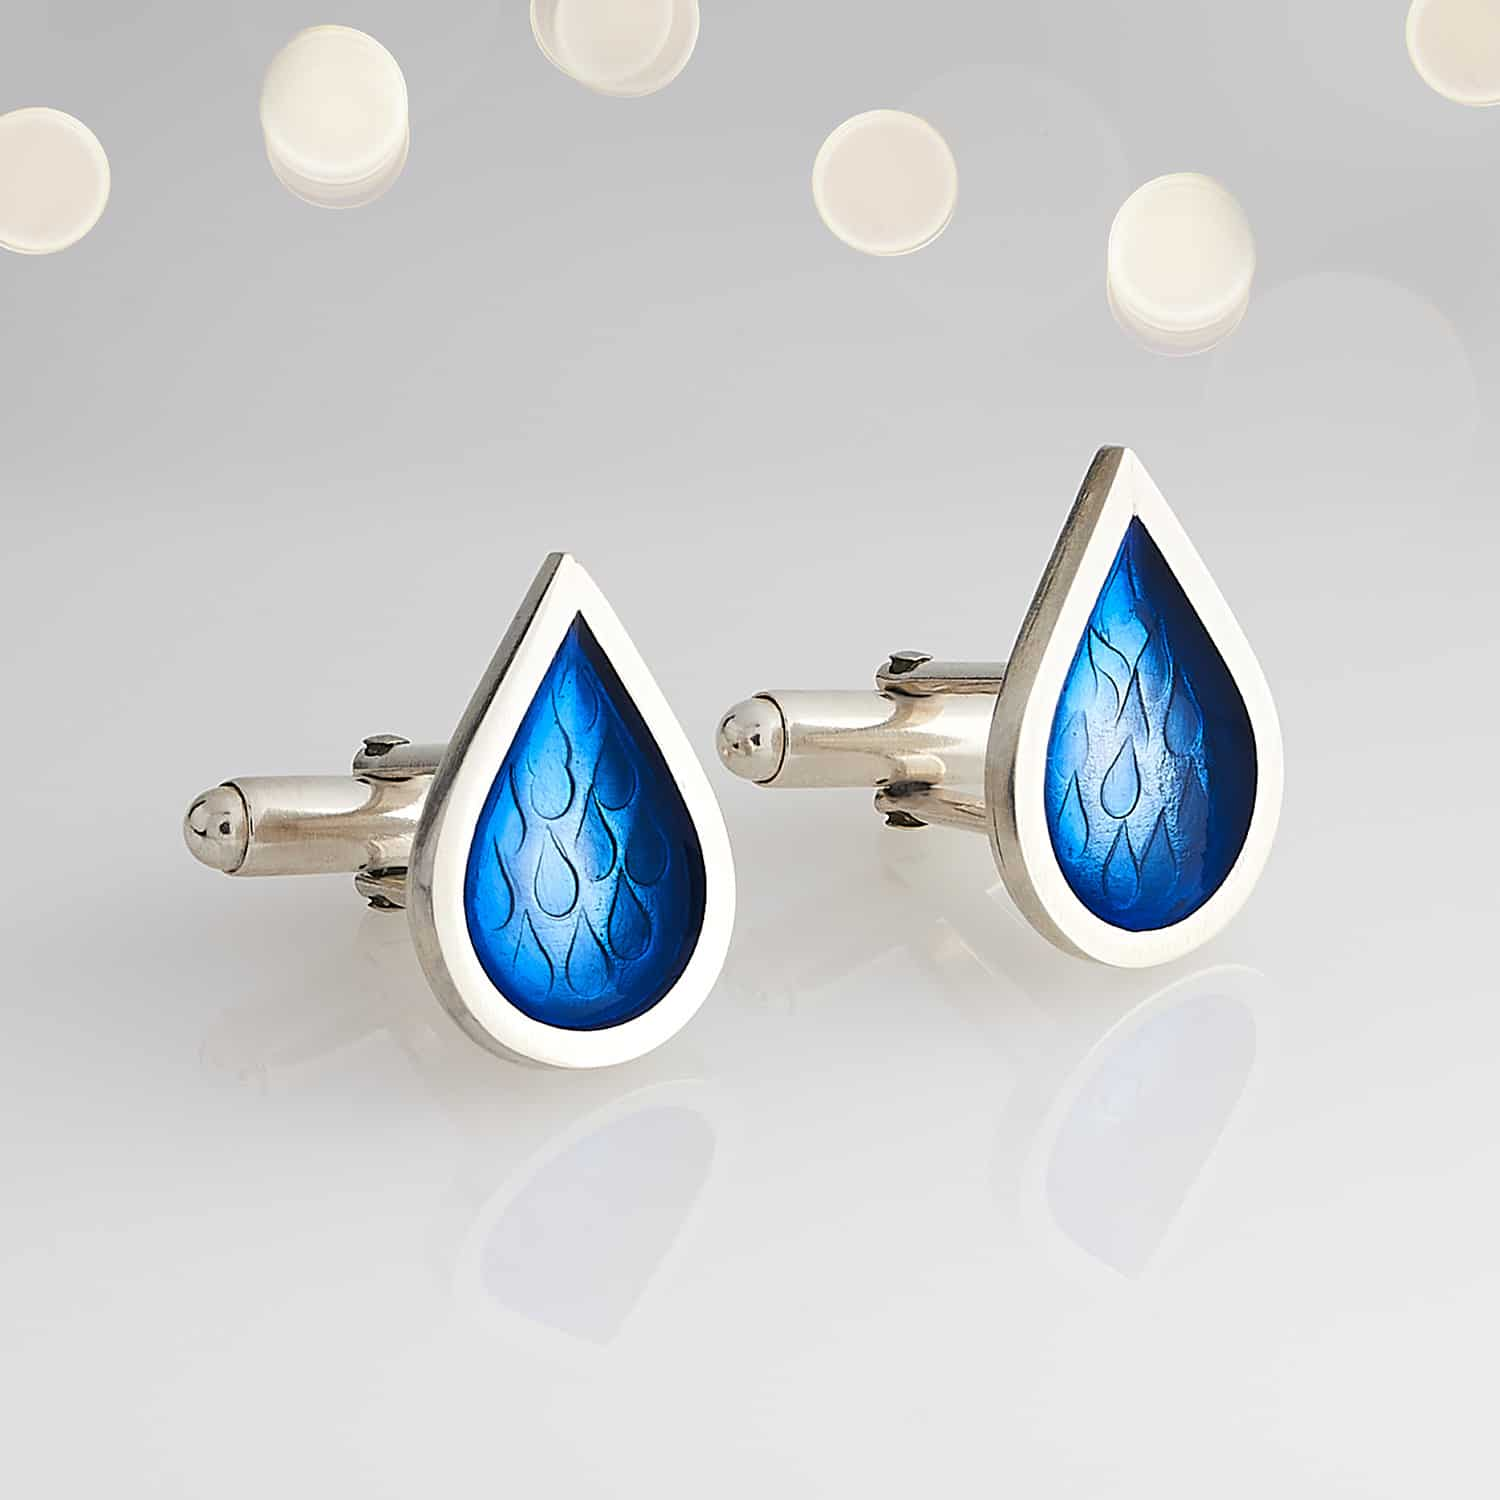 Product photograph of droplet styled cufflinks handmade from silver